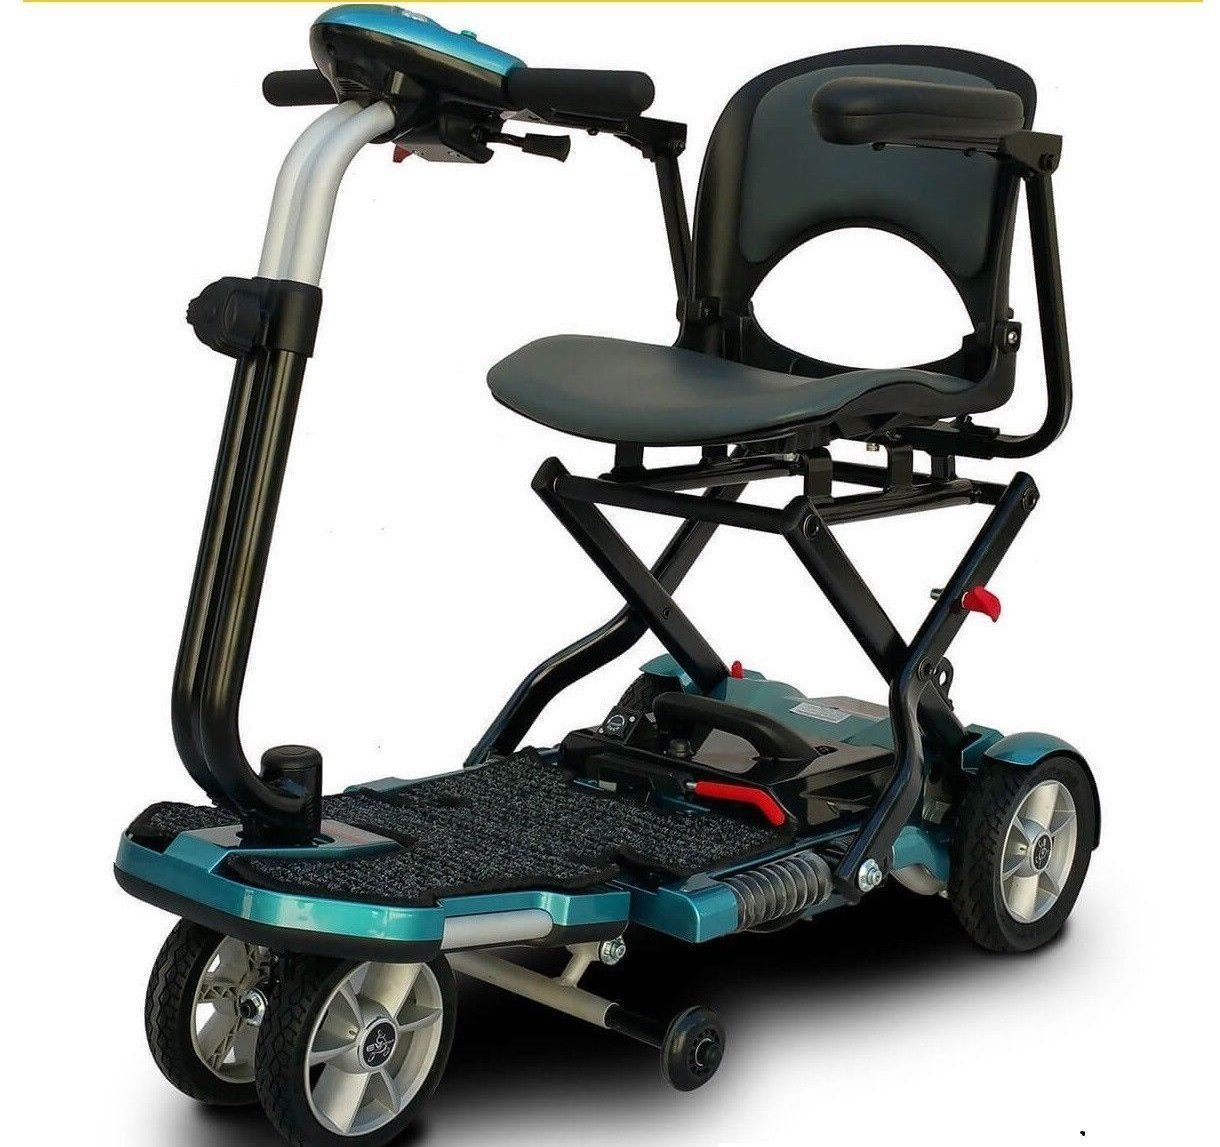 Ev Rider Transport Plus Folding Power Mobility Electric Travel Scooter Blue With Images Folding Mobility Scooter